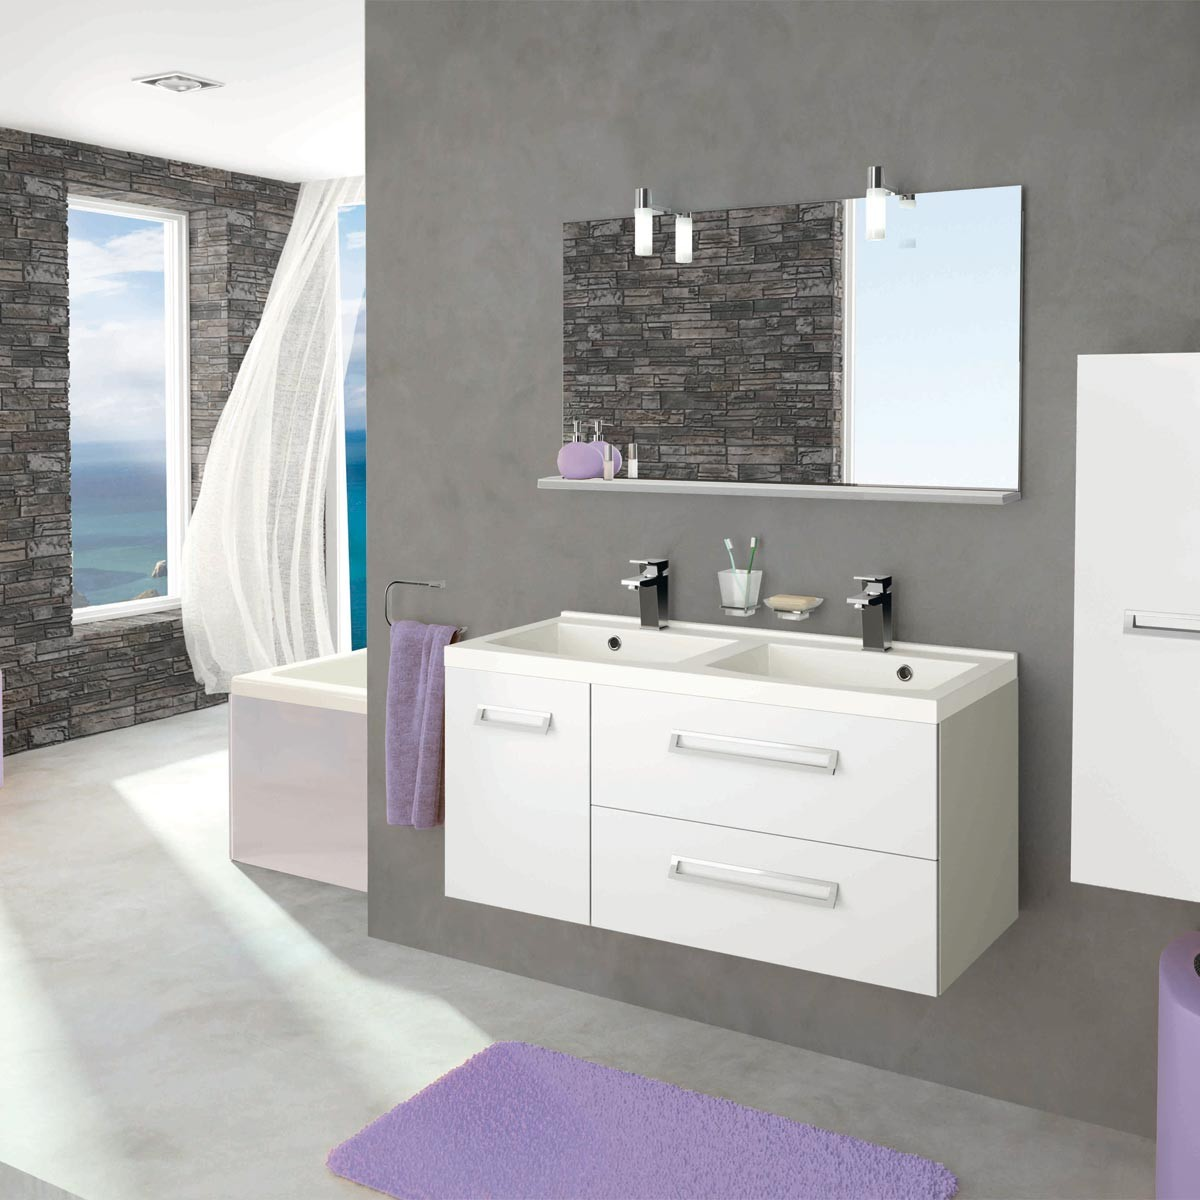 trendy meuble salle de bain faible profondeur leroy merlin with meuble profondeur 40 cm. Black Bedroom Furniture Sets. Home Design Ideas